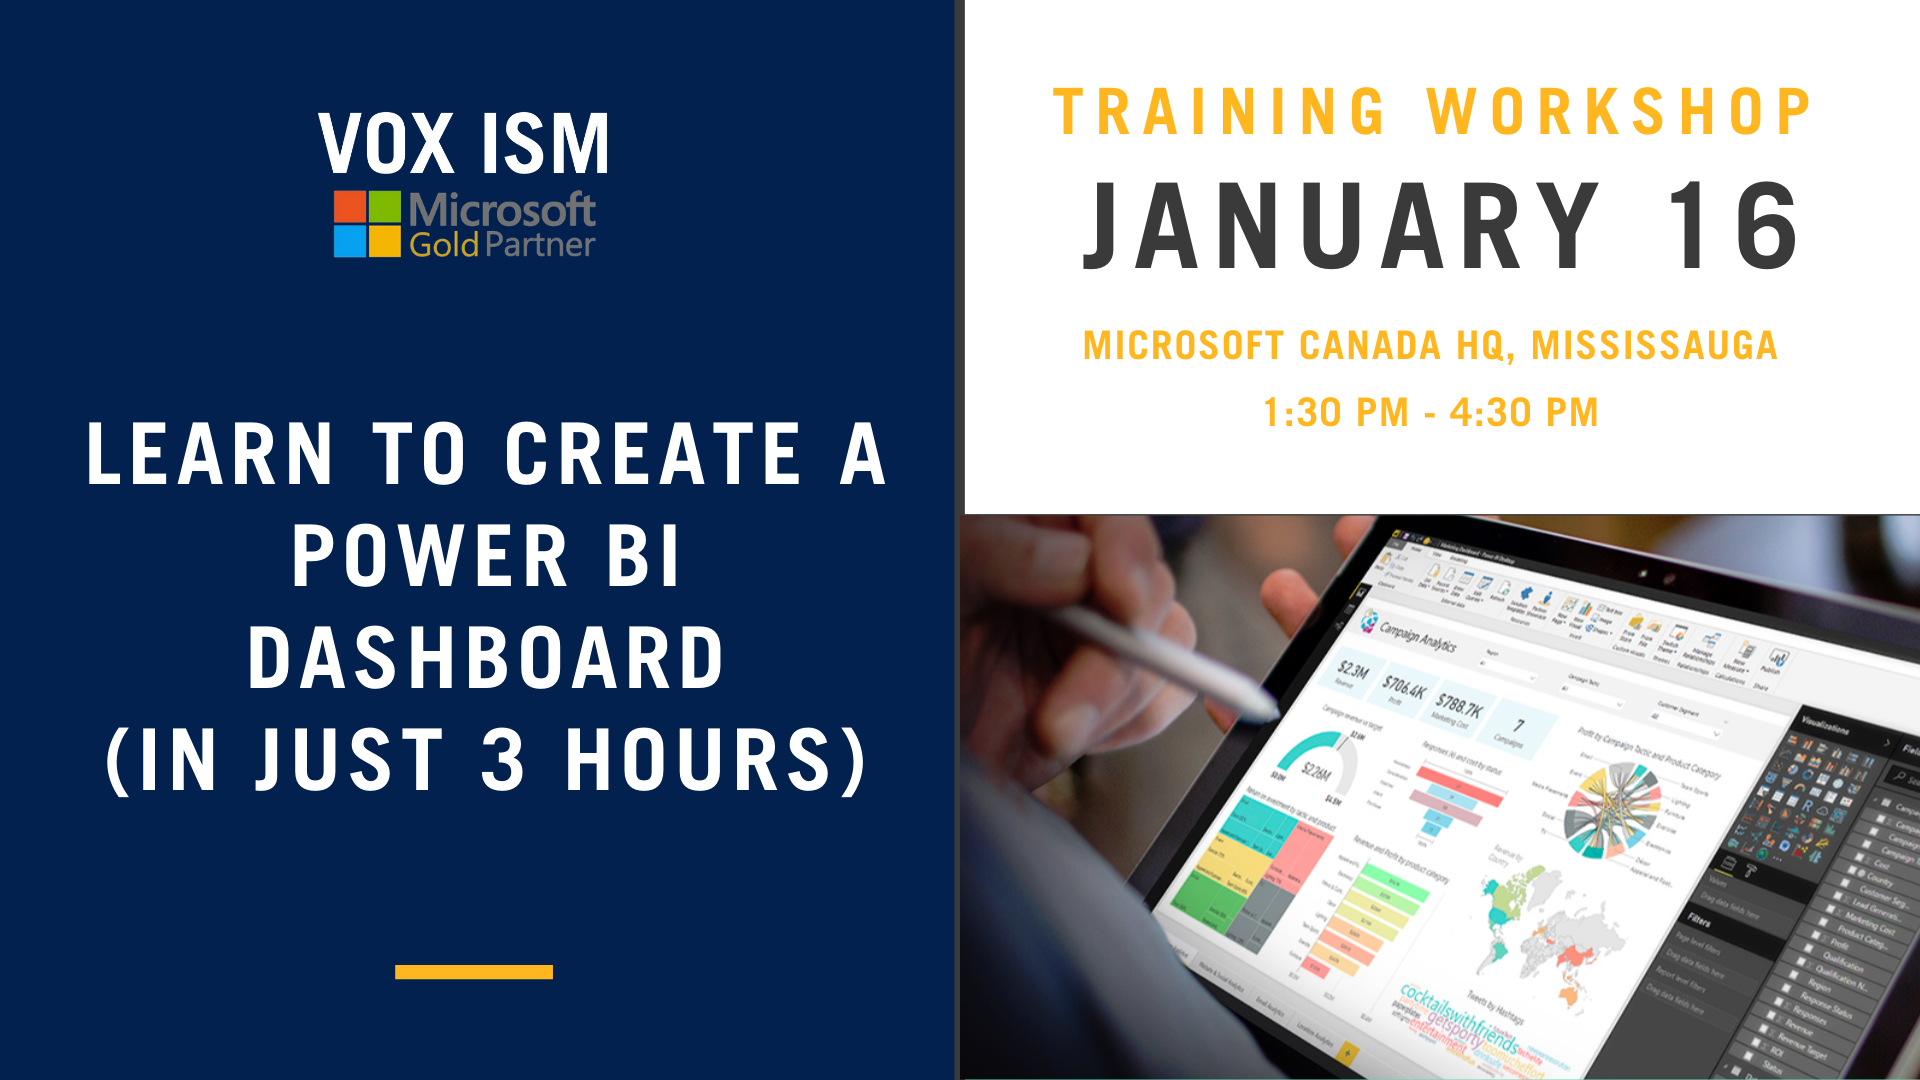 Learn to create Power BI Dashboards - VOX ISM Event